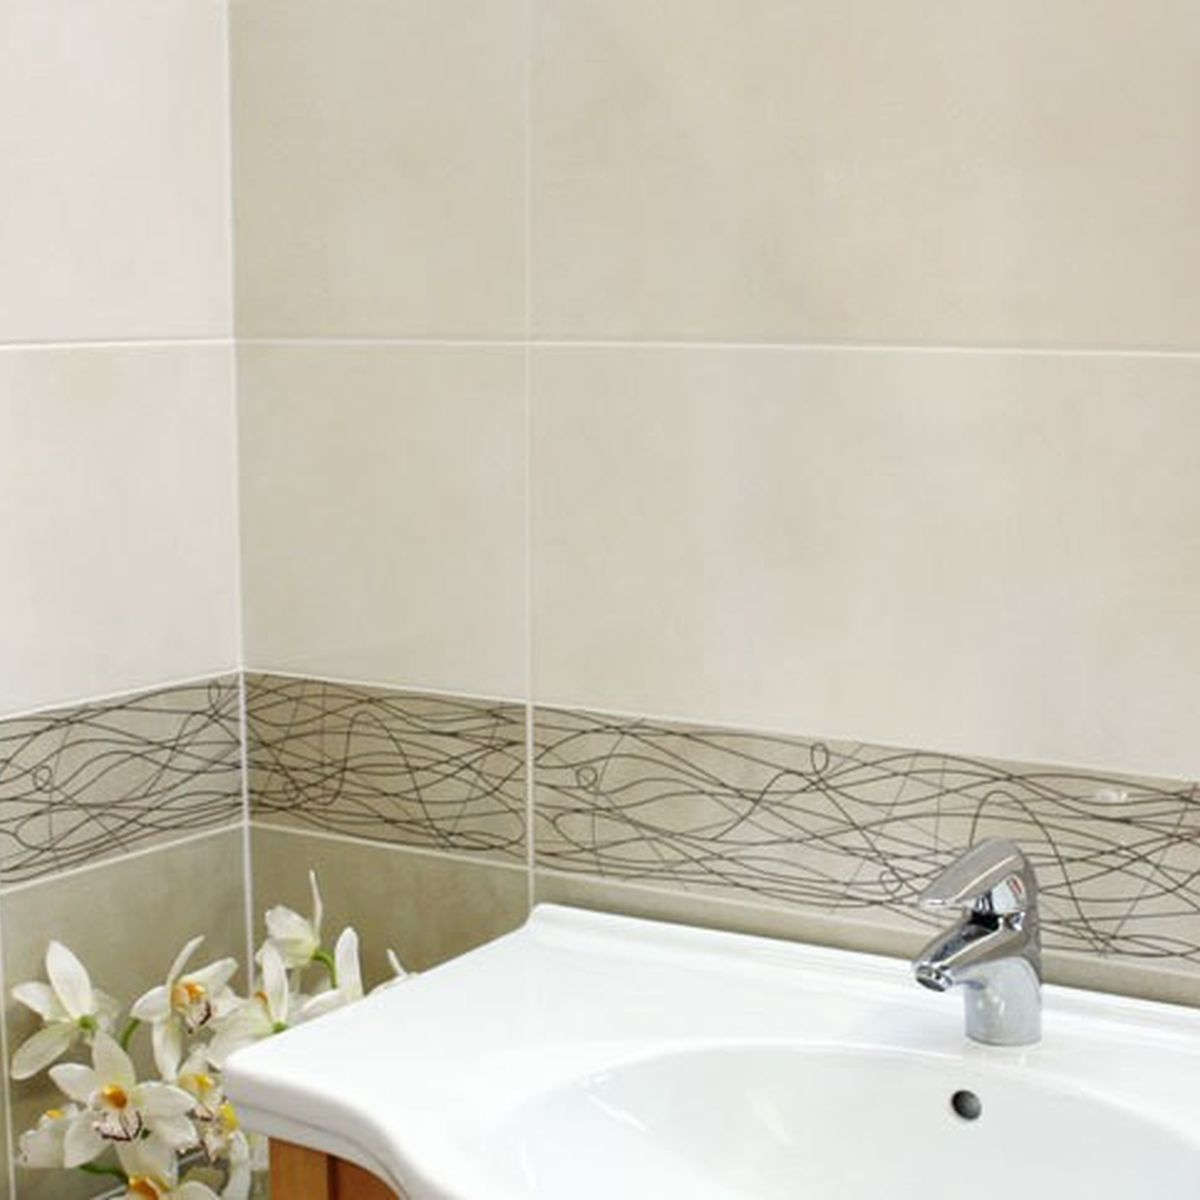 Bloom Cream Wall Tiles Clearance Bloom Cream Wall Tiles Clearance Layjao